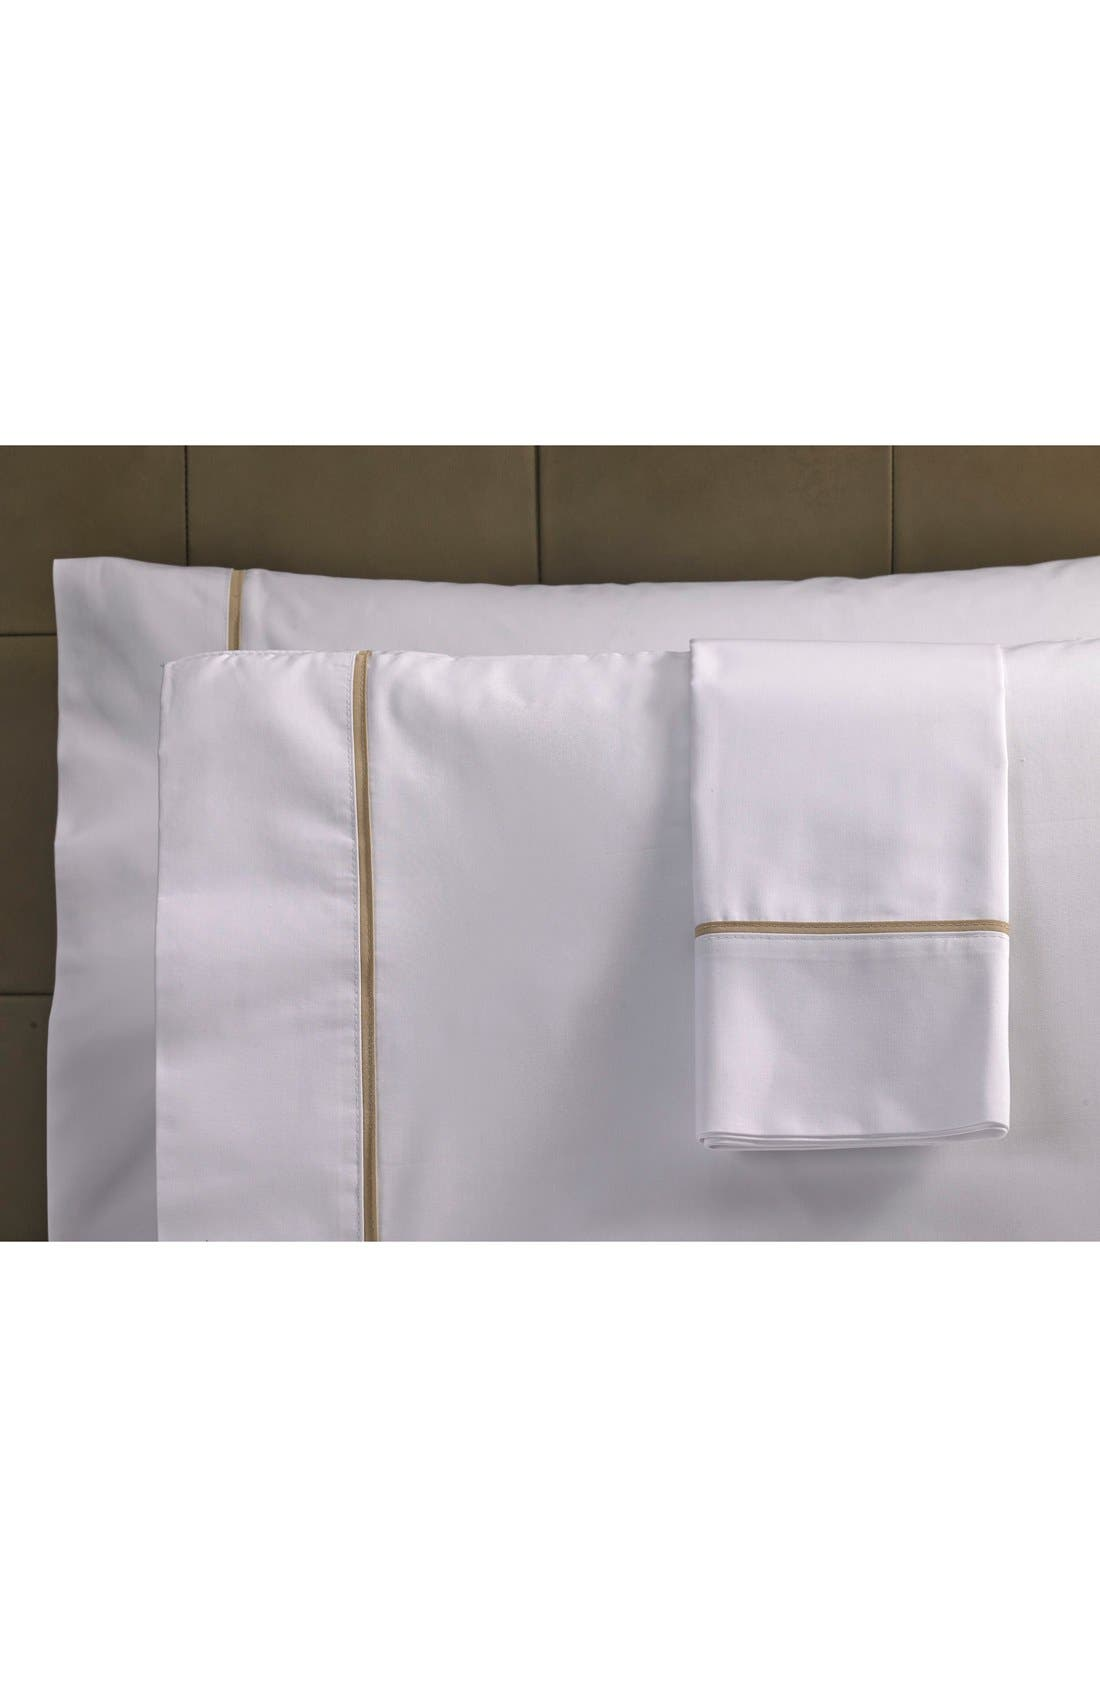 Main Image - Westin At Home Ultra Luxe 600 Thread Count Pillowcase